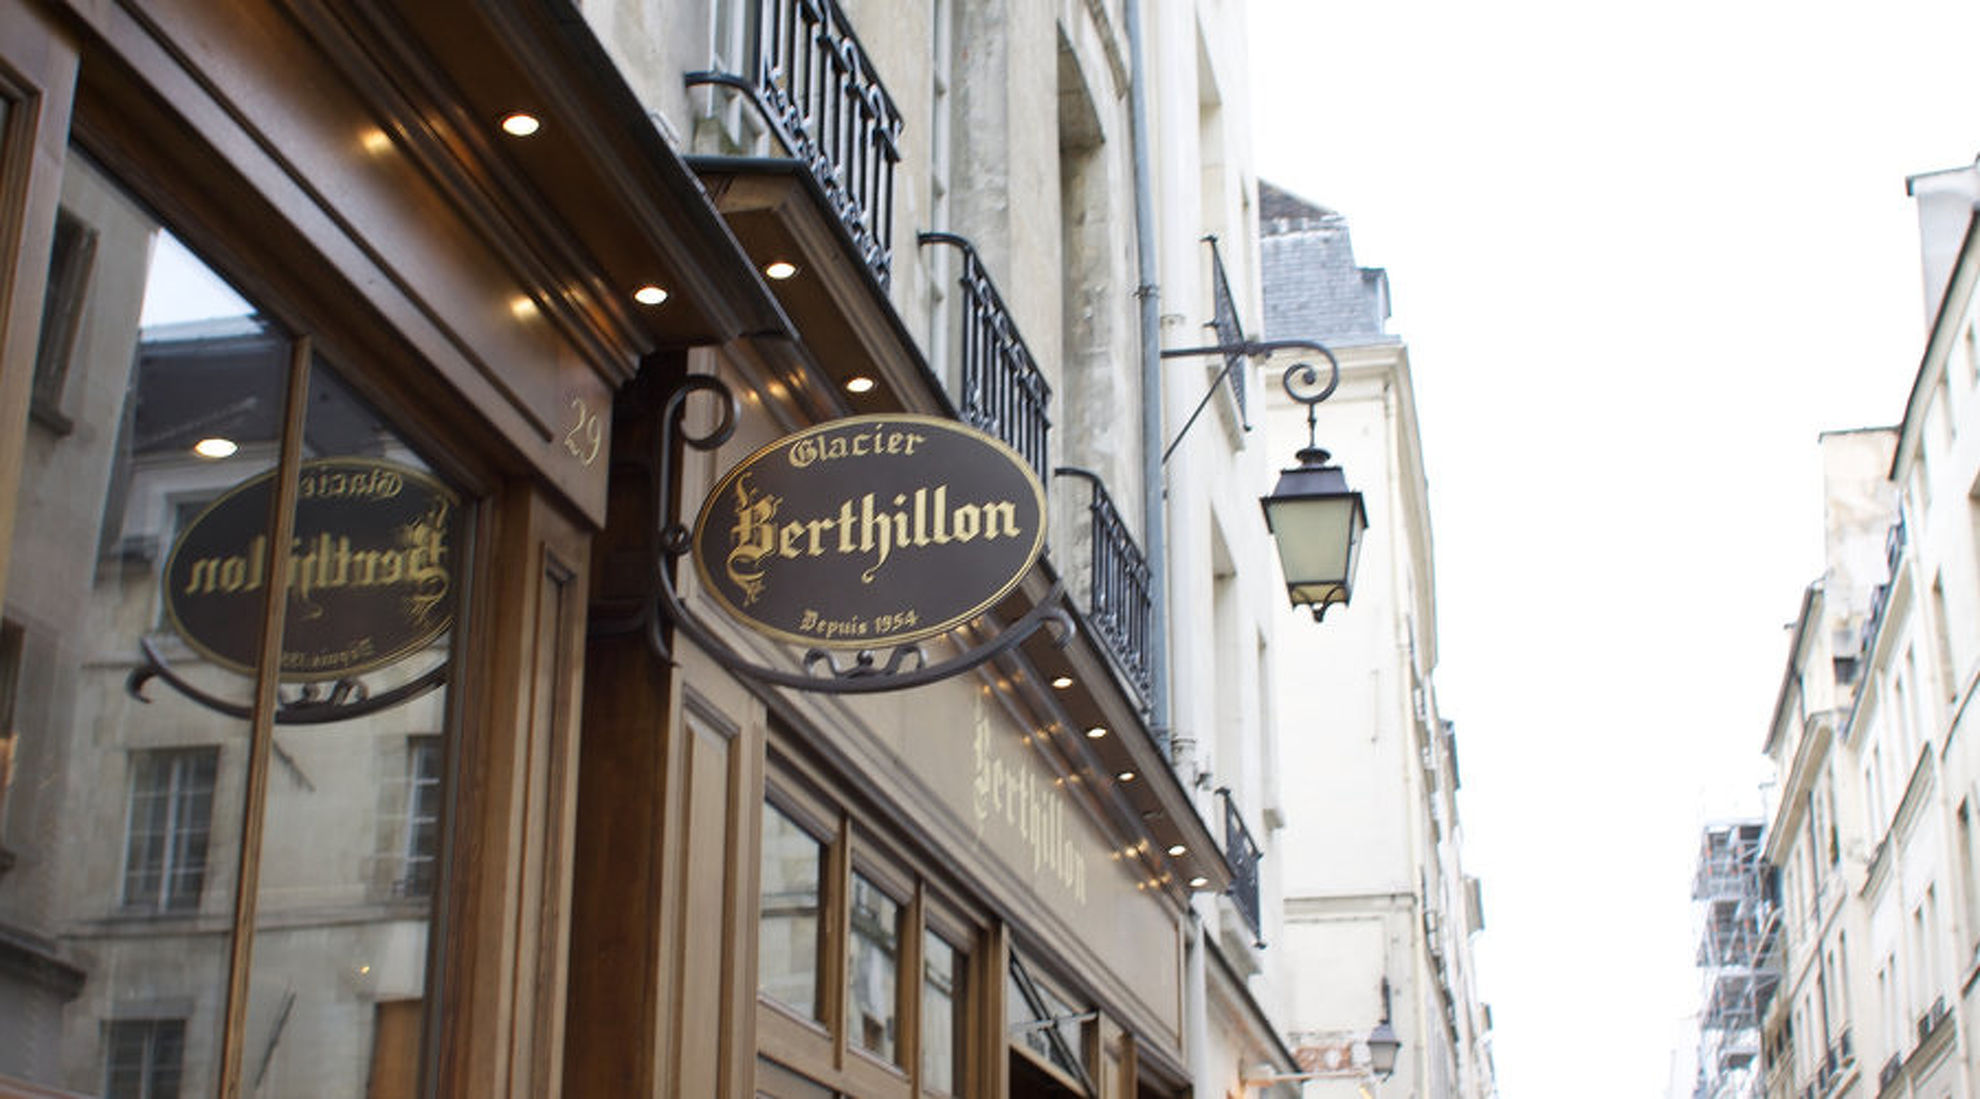 Explore Berthillon